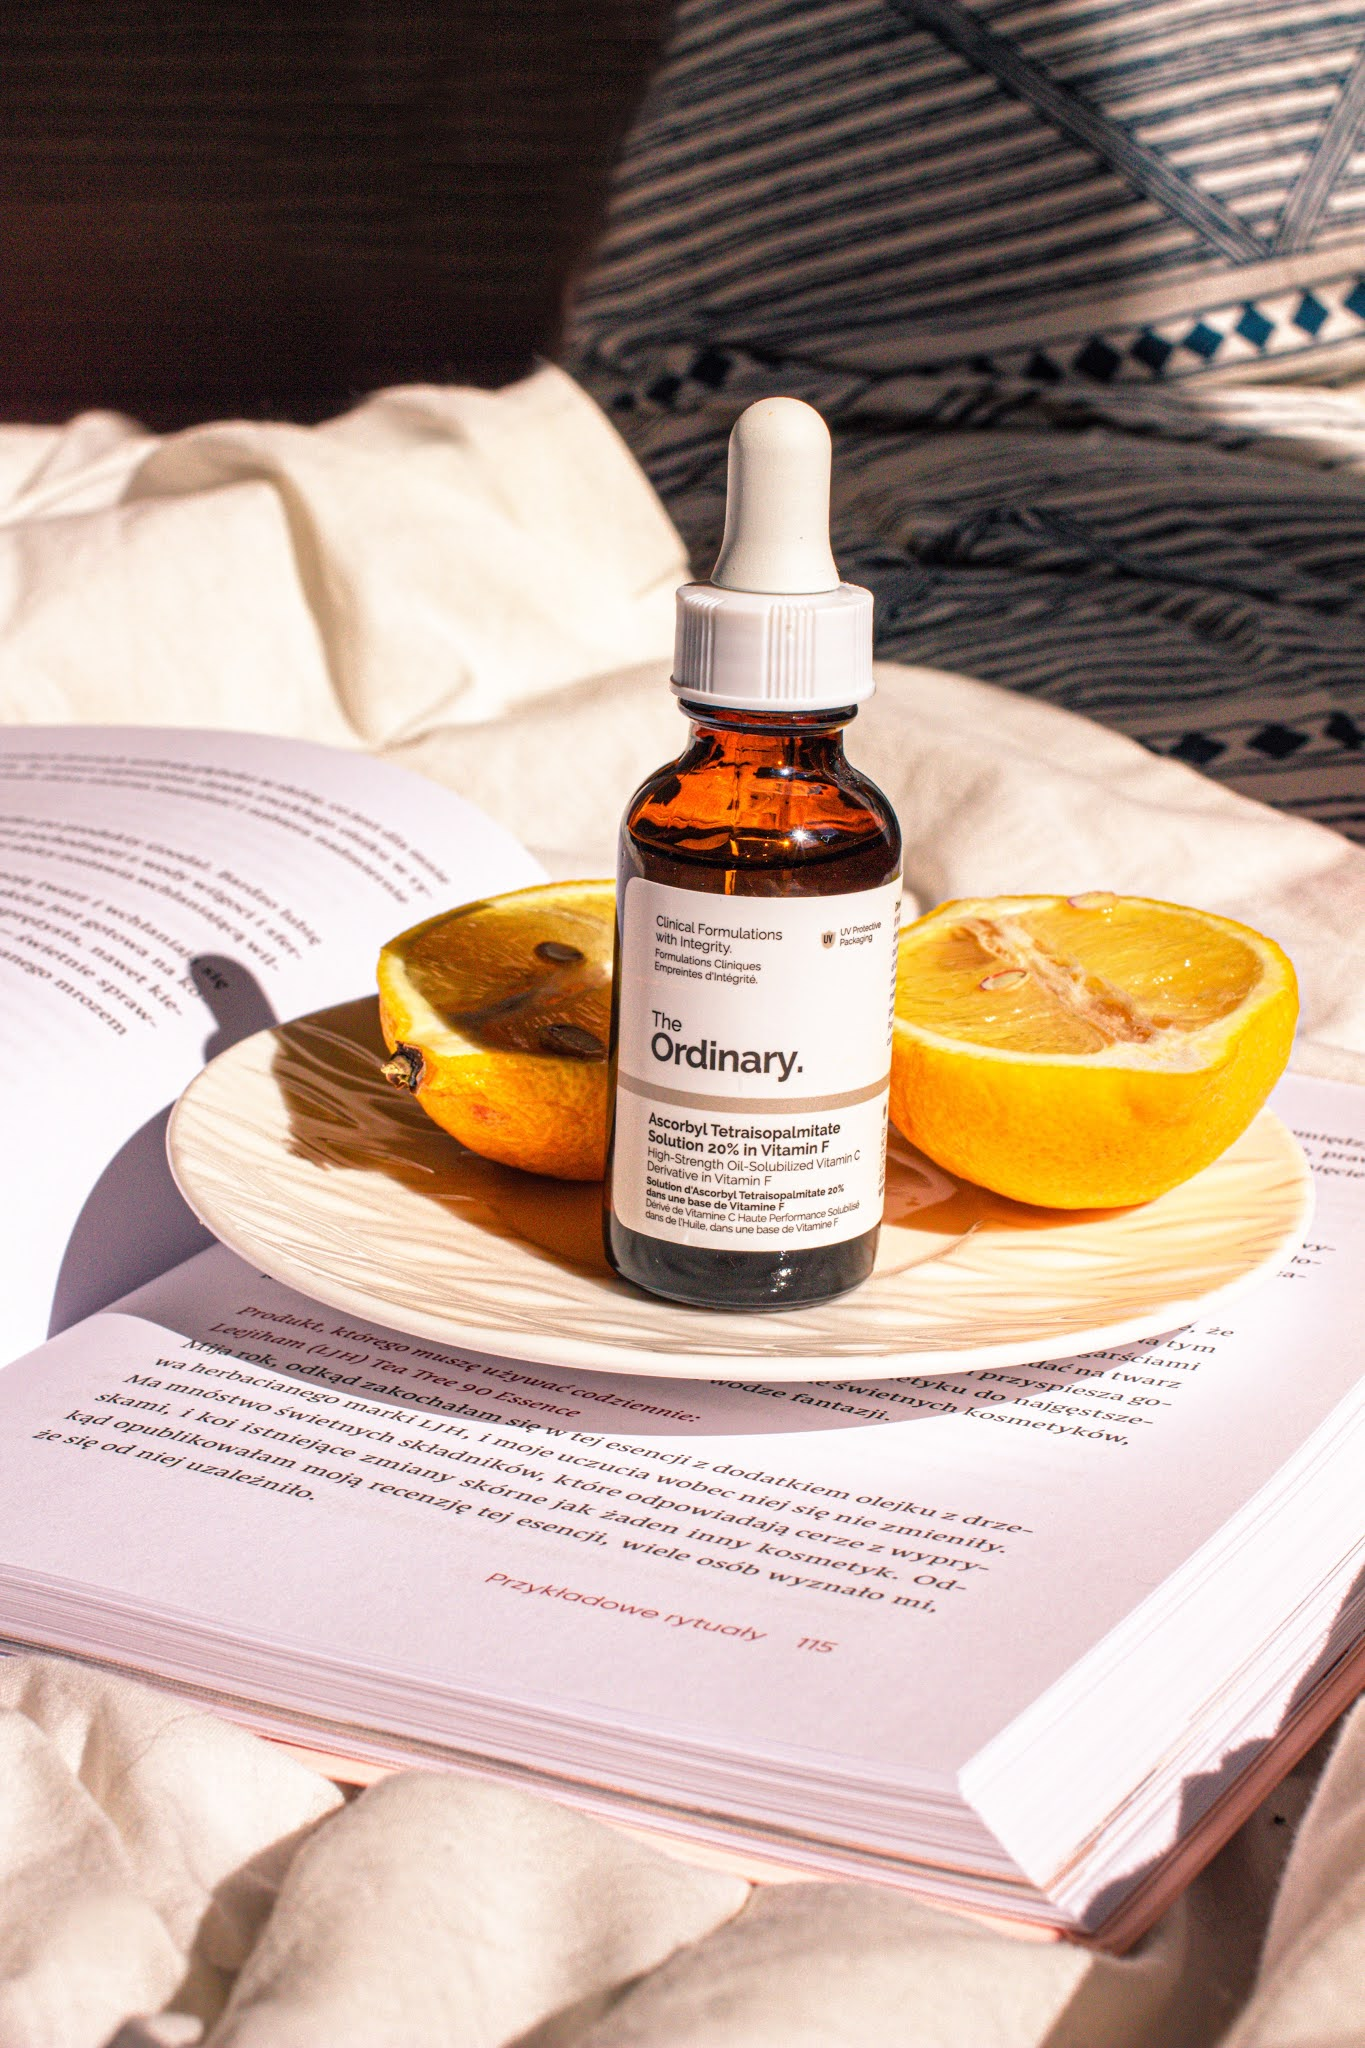 THE ORDINARY - ASCORBYL TETRAISOPALMITATE SOLUTION 20% IN VITAMIN F - SERUM OLEJOWE Z WITAMINĄ C I F